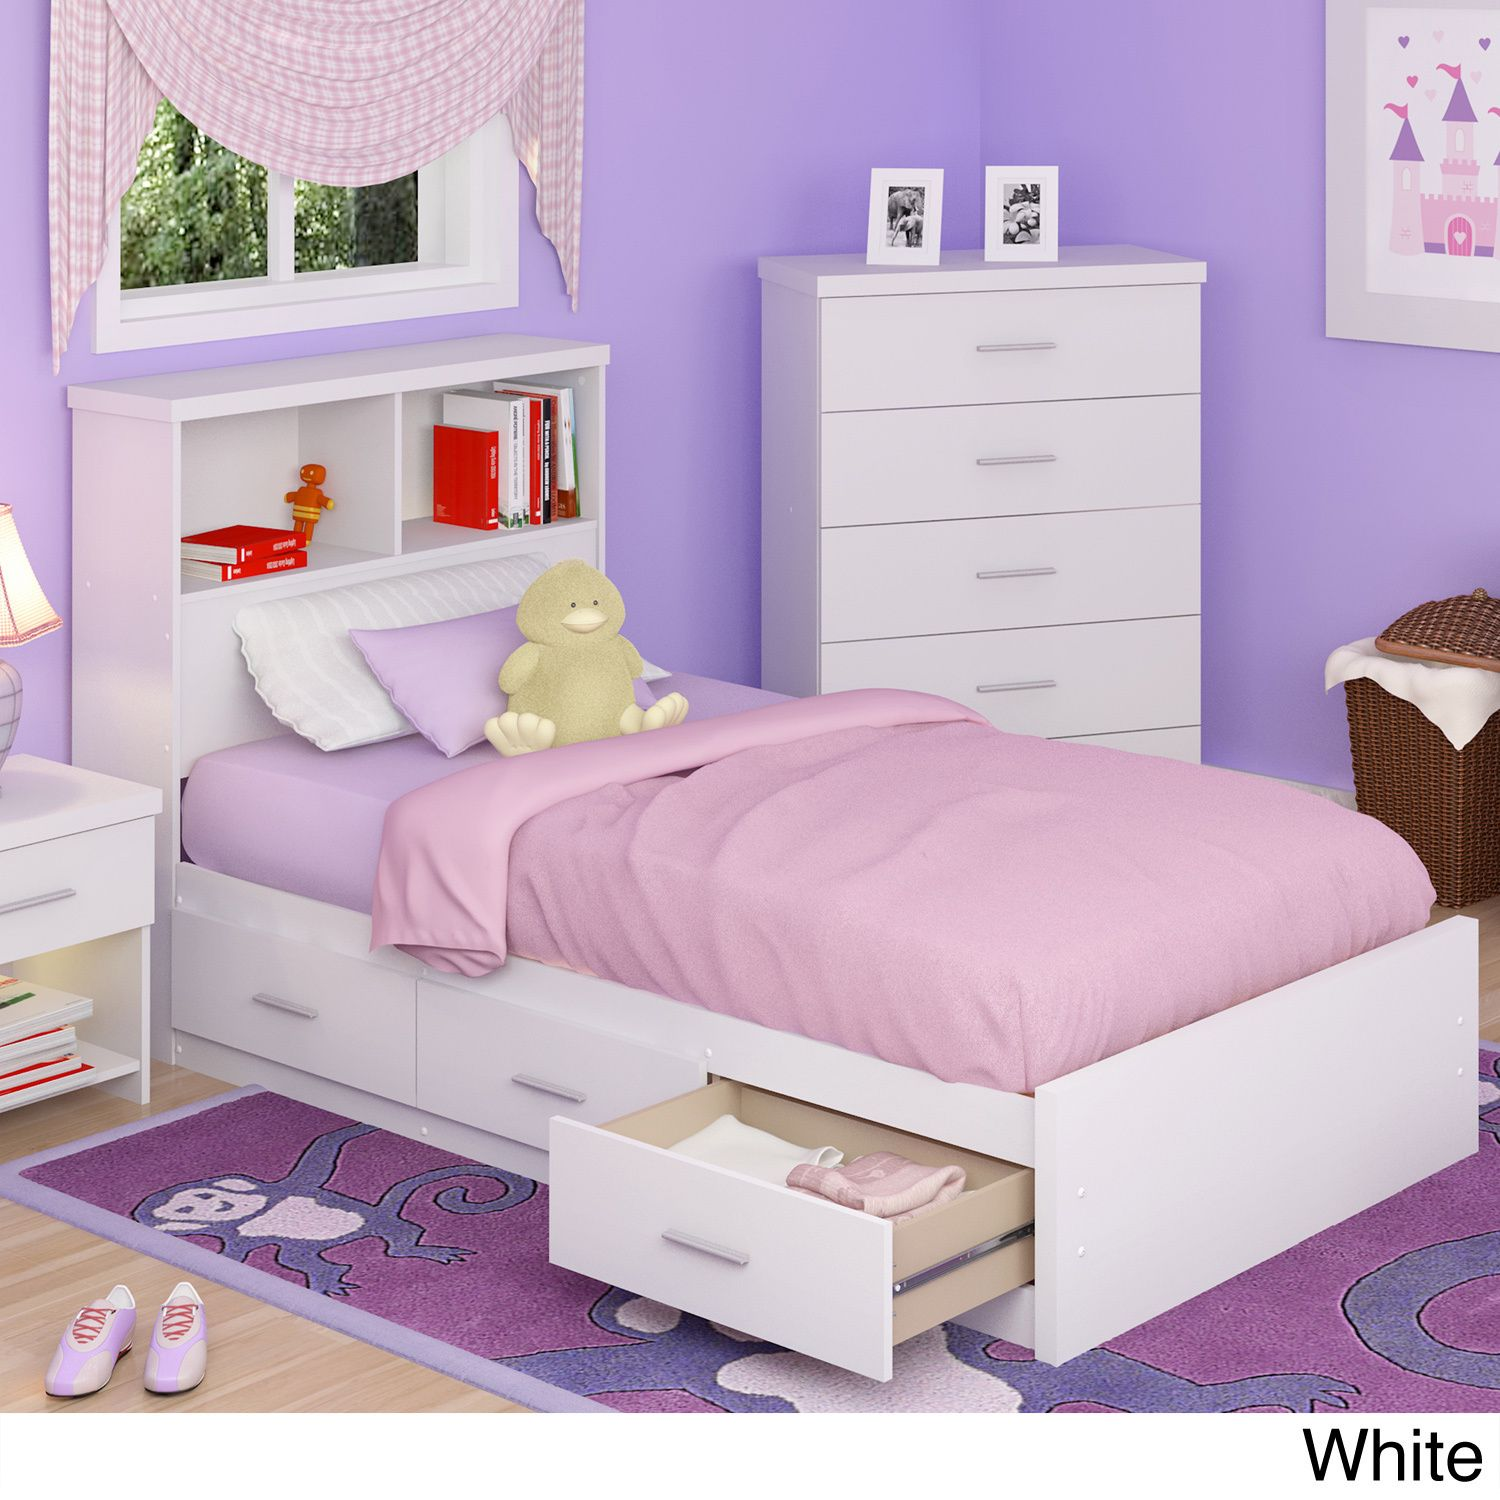 A Simple Contemporary Designed Platform Bed Set Ideal For Any Kid S Bedroom This Includes